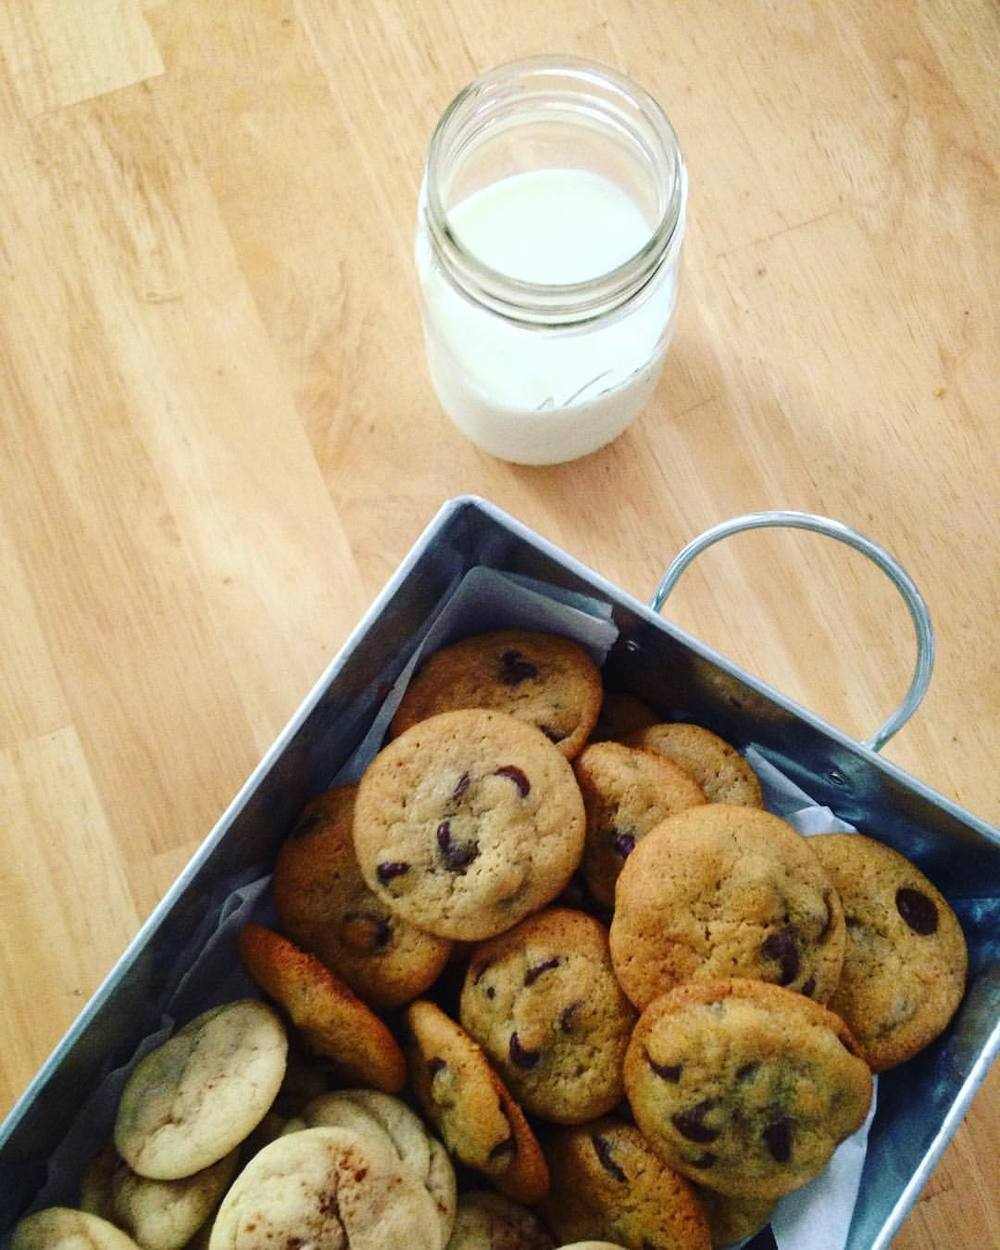 A low key milk and cookie pairing for an afternoon get together.